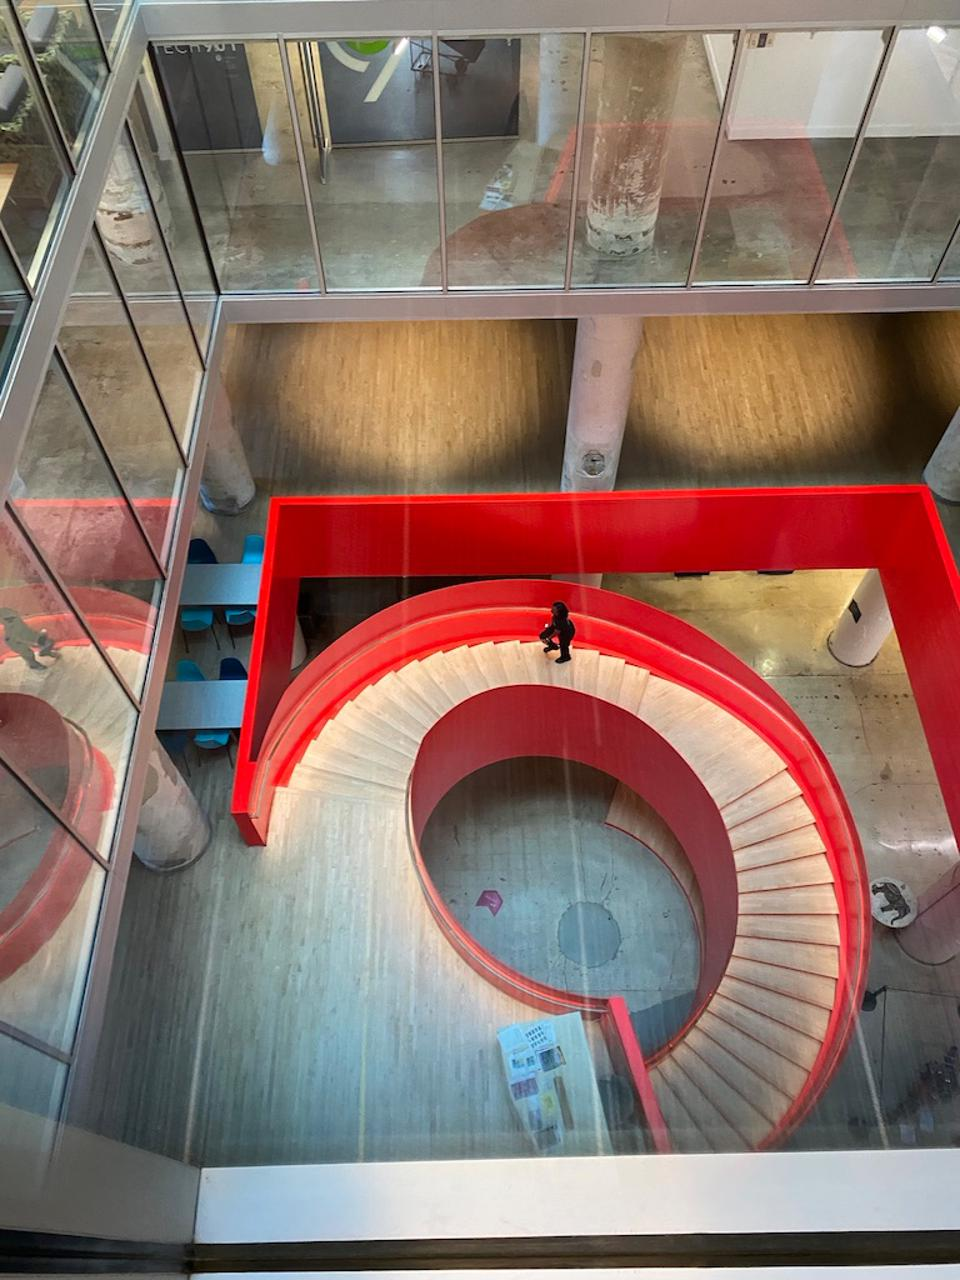 The red spiral staircase